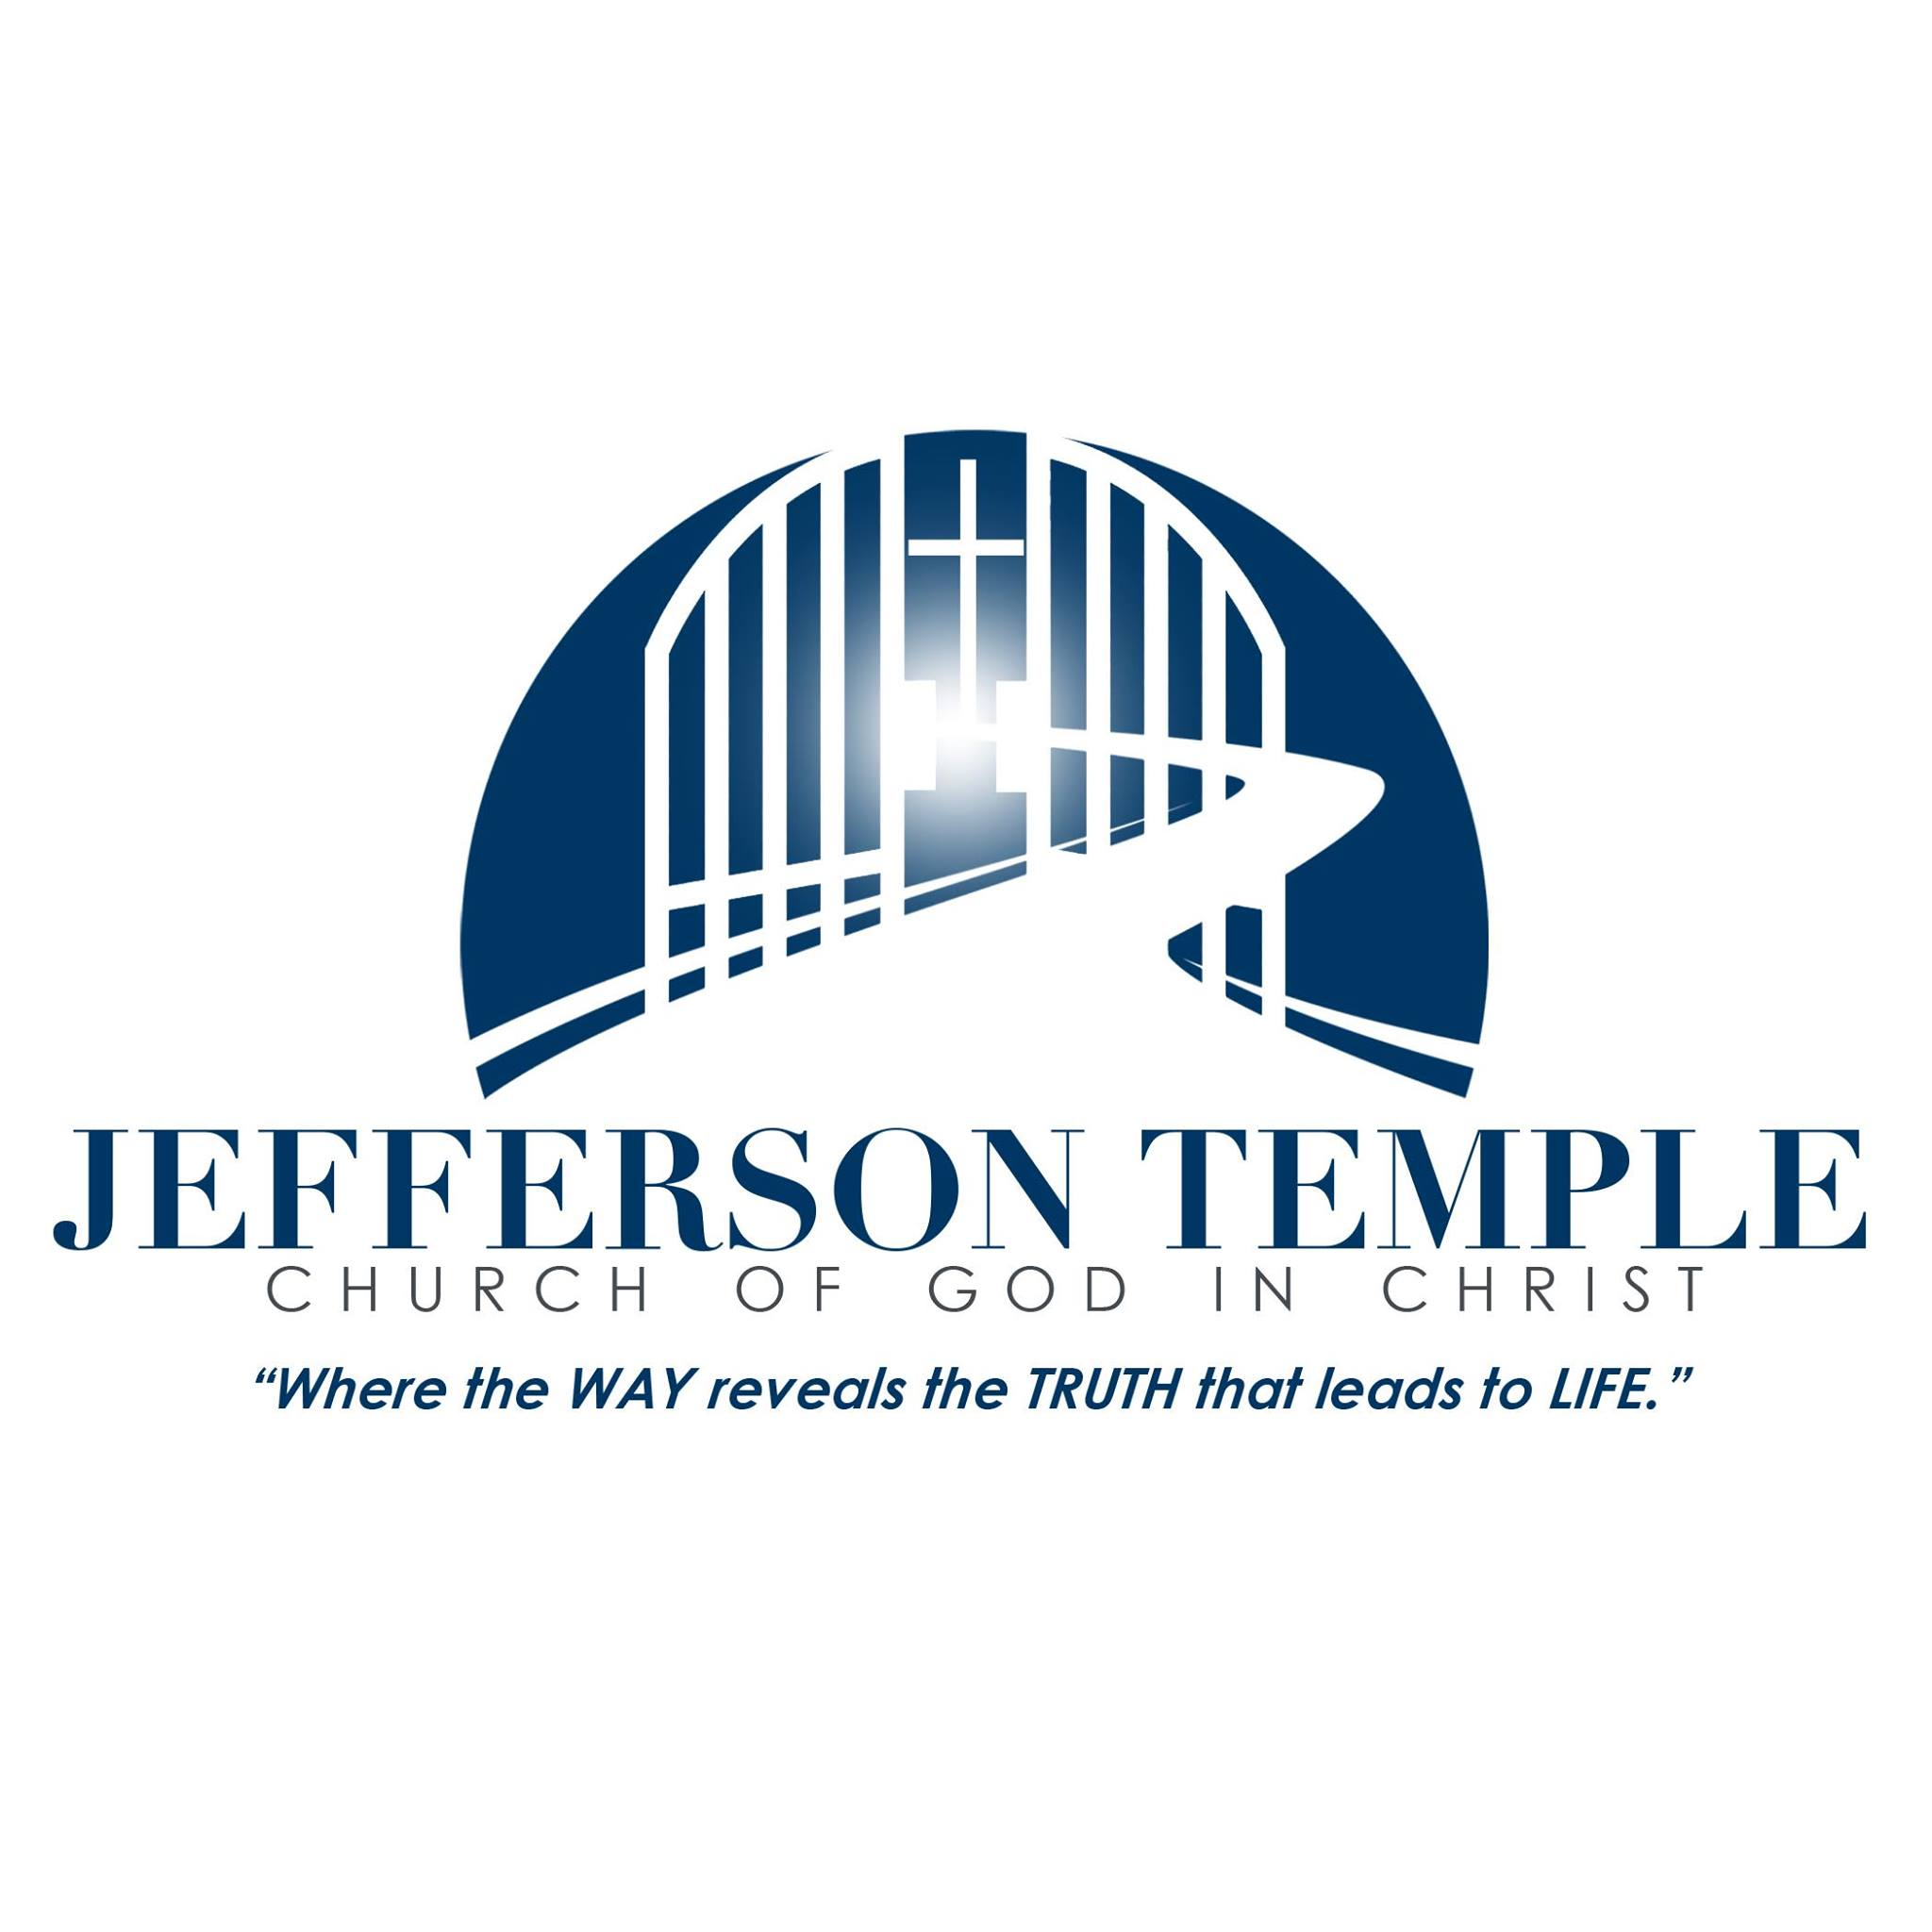 Jefferson Temple - Church of God in Christ